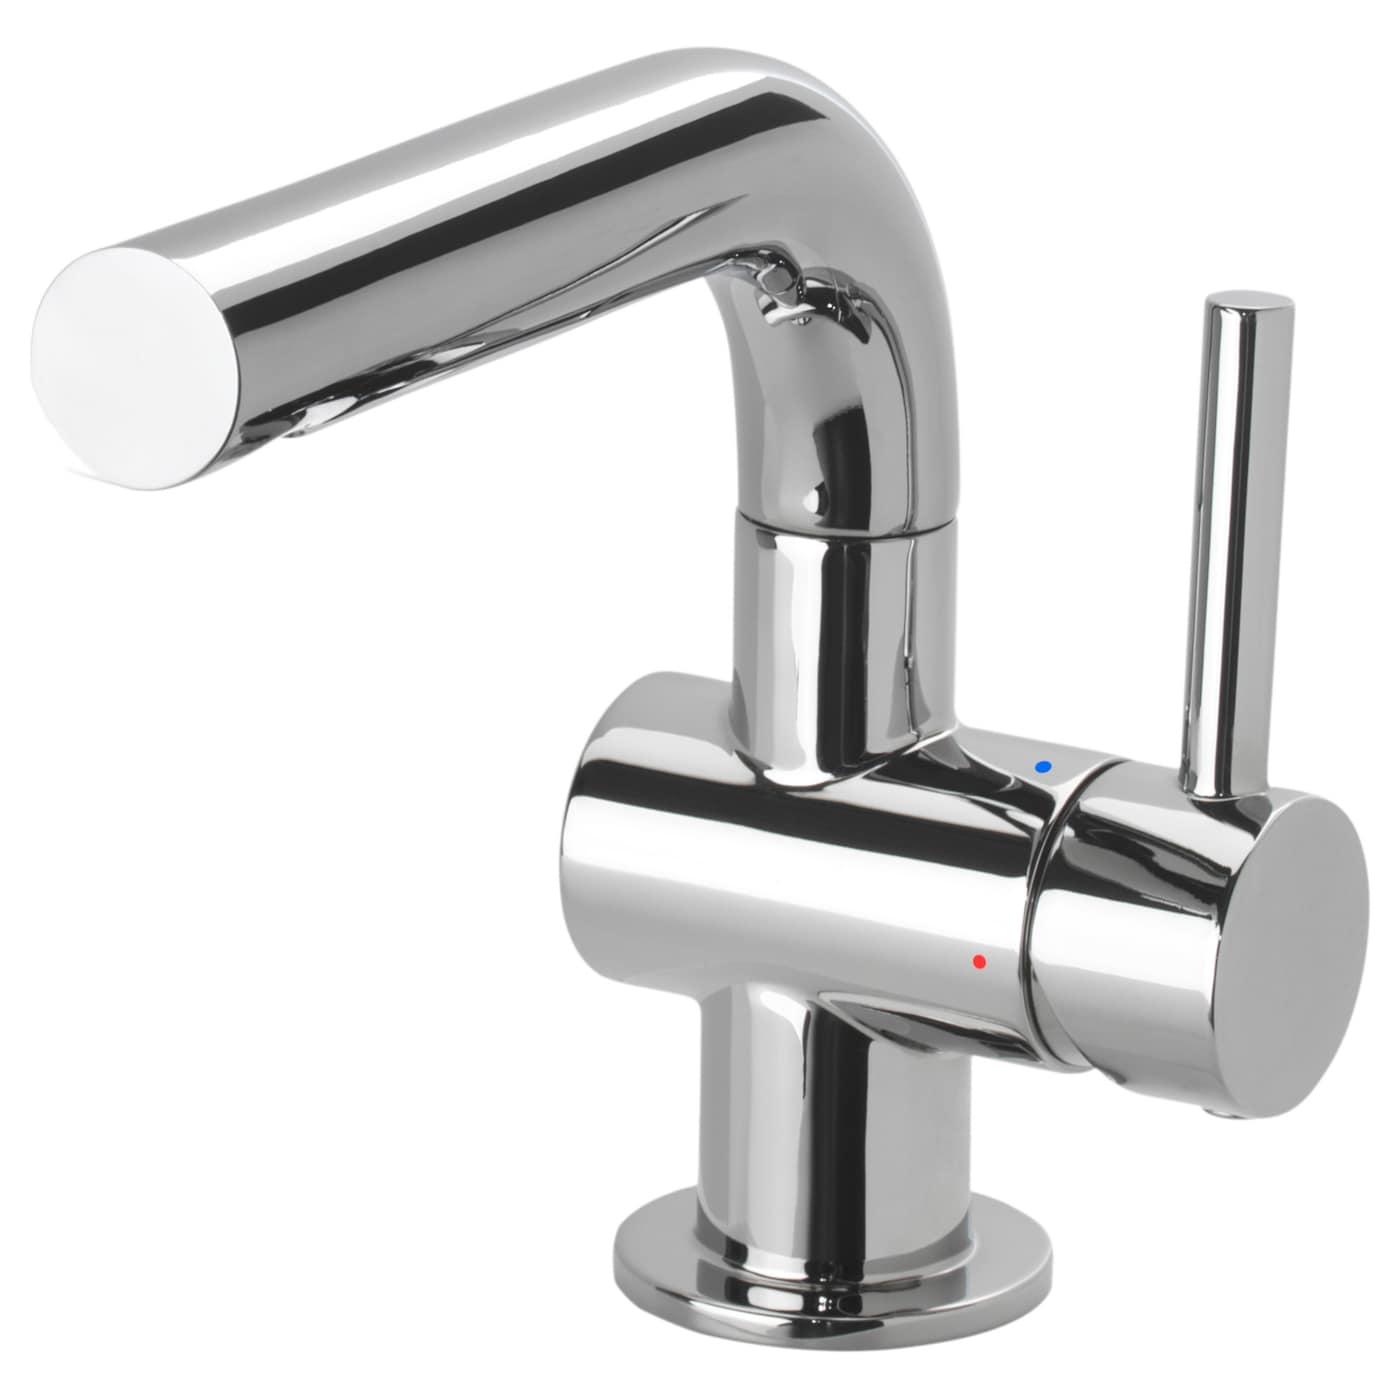 IKEA SVENSK R wash basin mixer tap with strainer. SVENSK R Wash basin mixer tap with strainer Chrome plated   IKEA